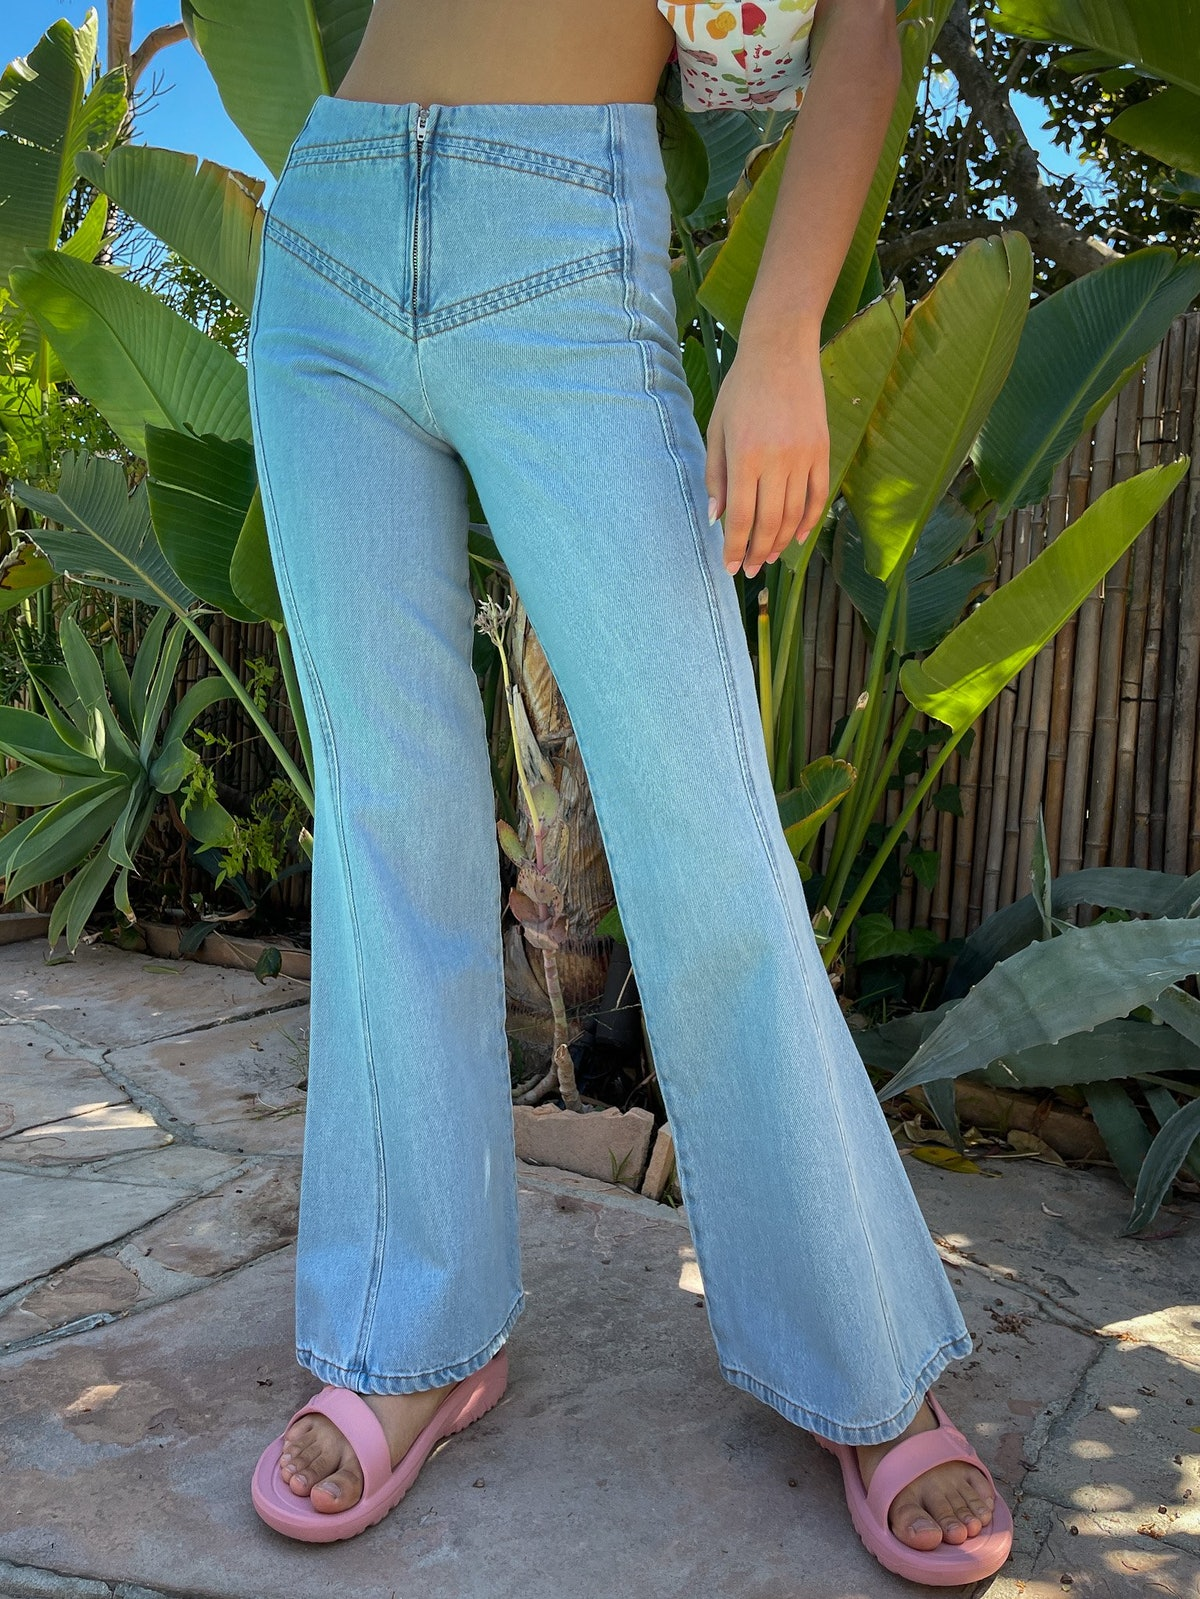 Marinella trousers in light blue from Gimaguas.